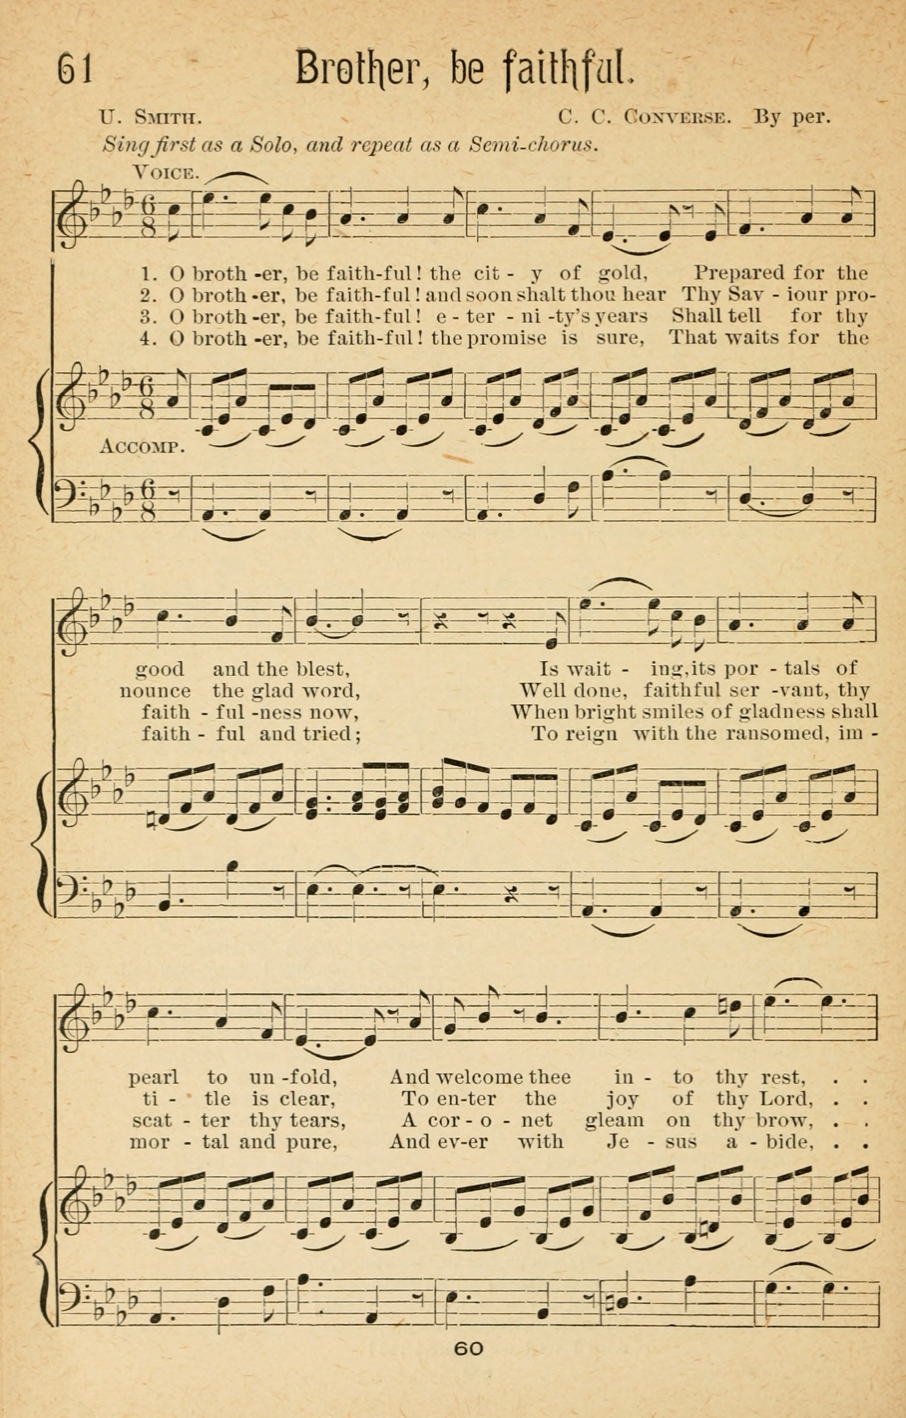 THE TRANSFORMATION OF THE HYMN 'O BROTHER, BE FAITHFUL' | Hymns for